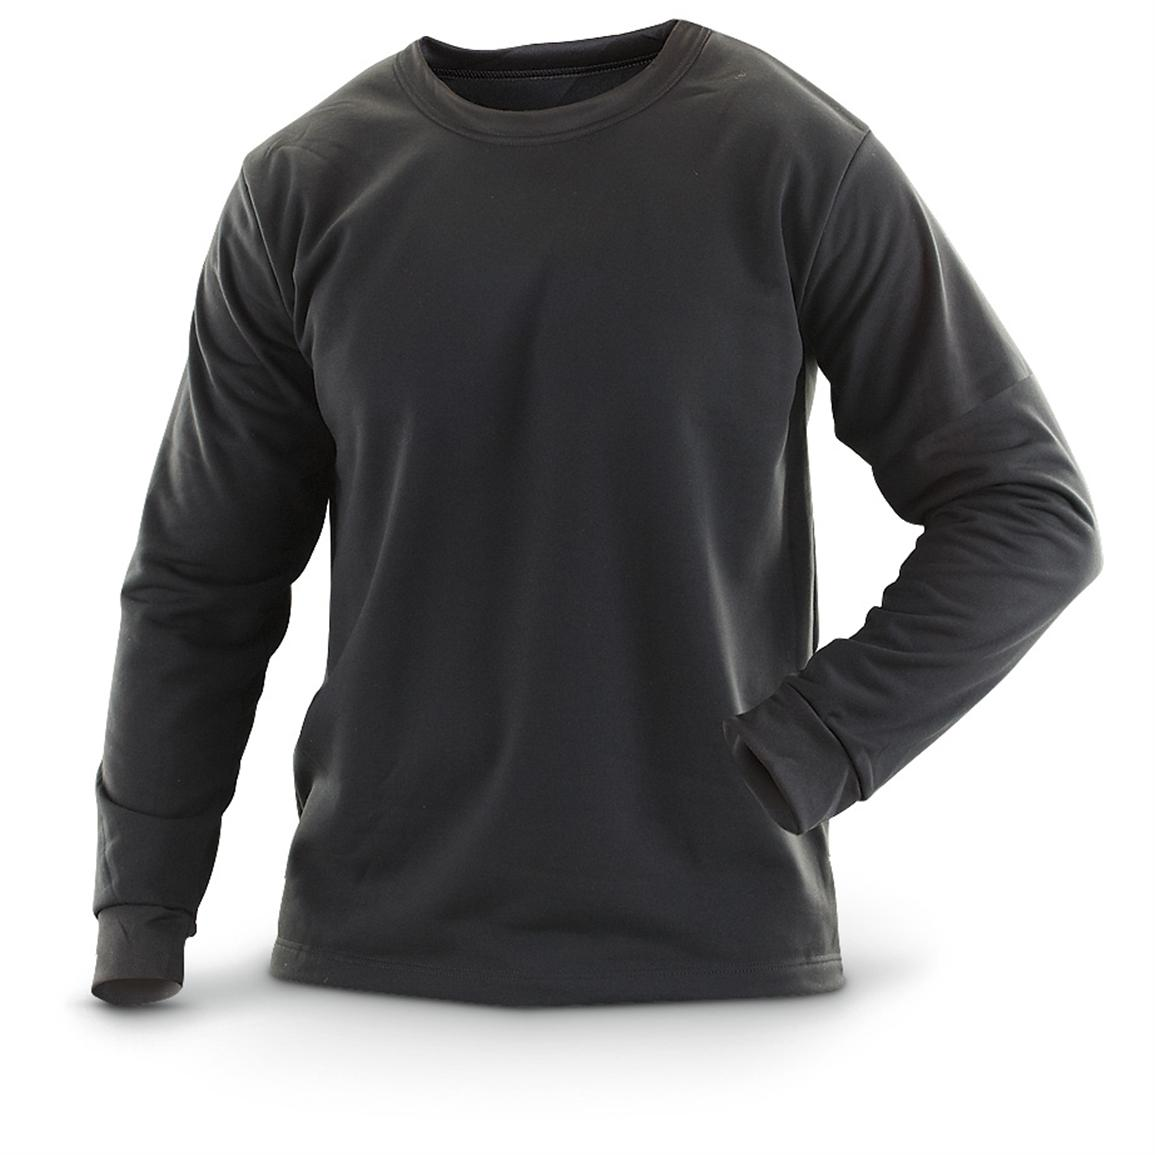 New U.S. Military Surplus Long-sleeved Midweight T-shirt, Black